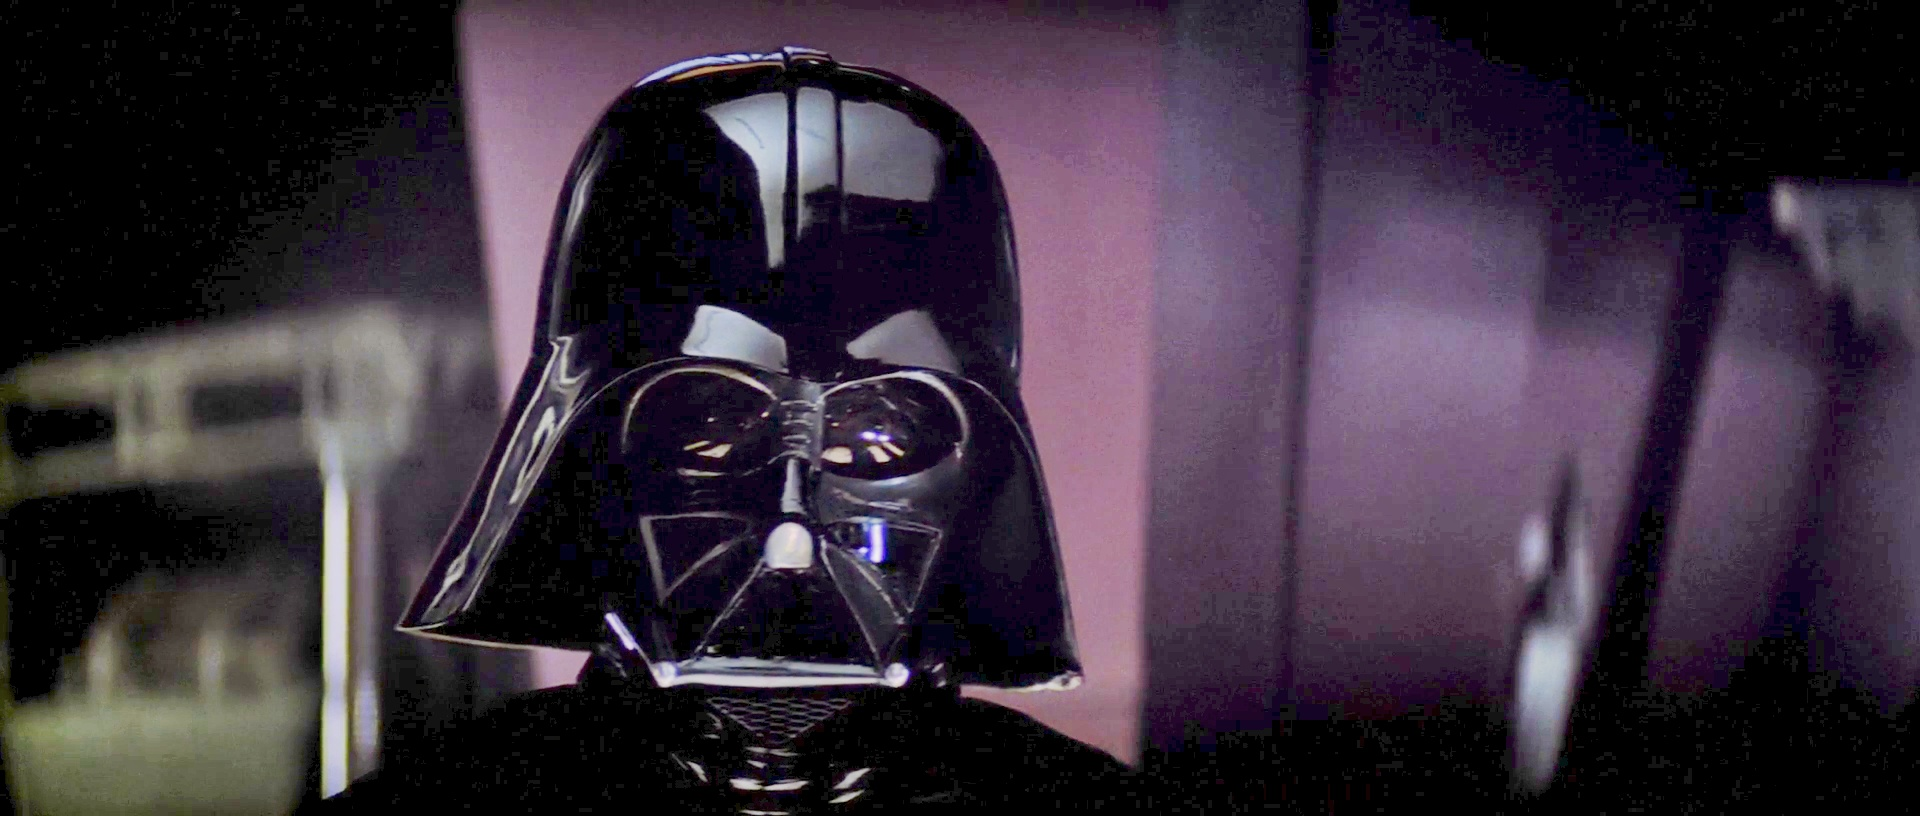 vaderbase.com/Bilder/blog_2018/screencap_empire_strikes_back_darth_vader_anderson.jpg